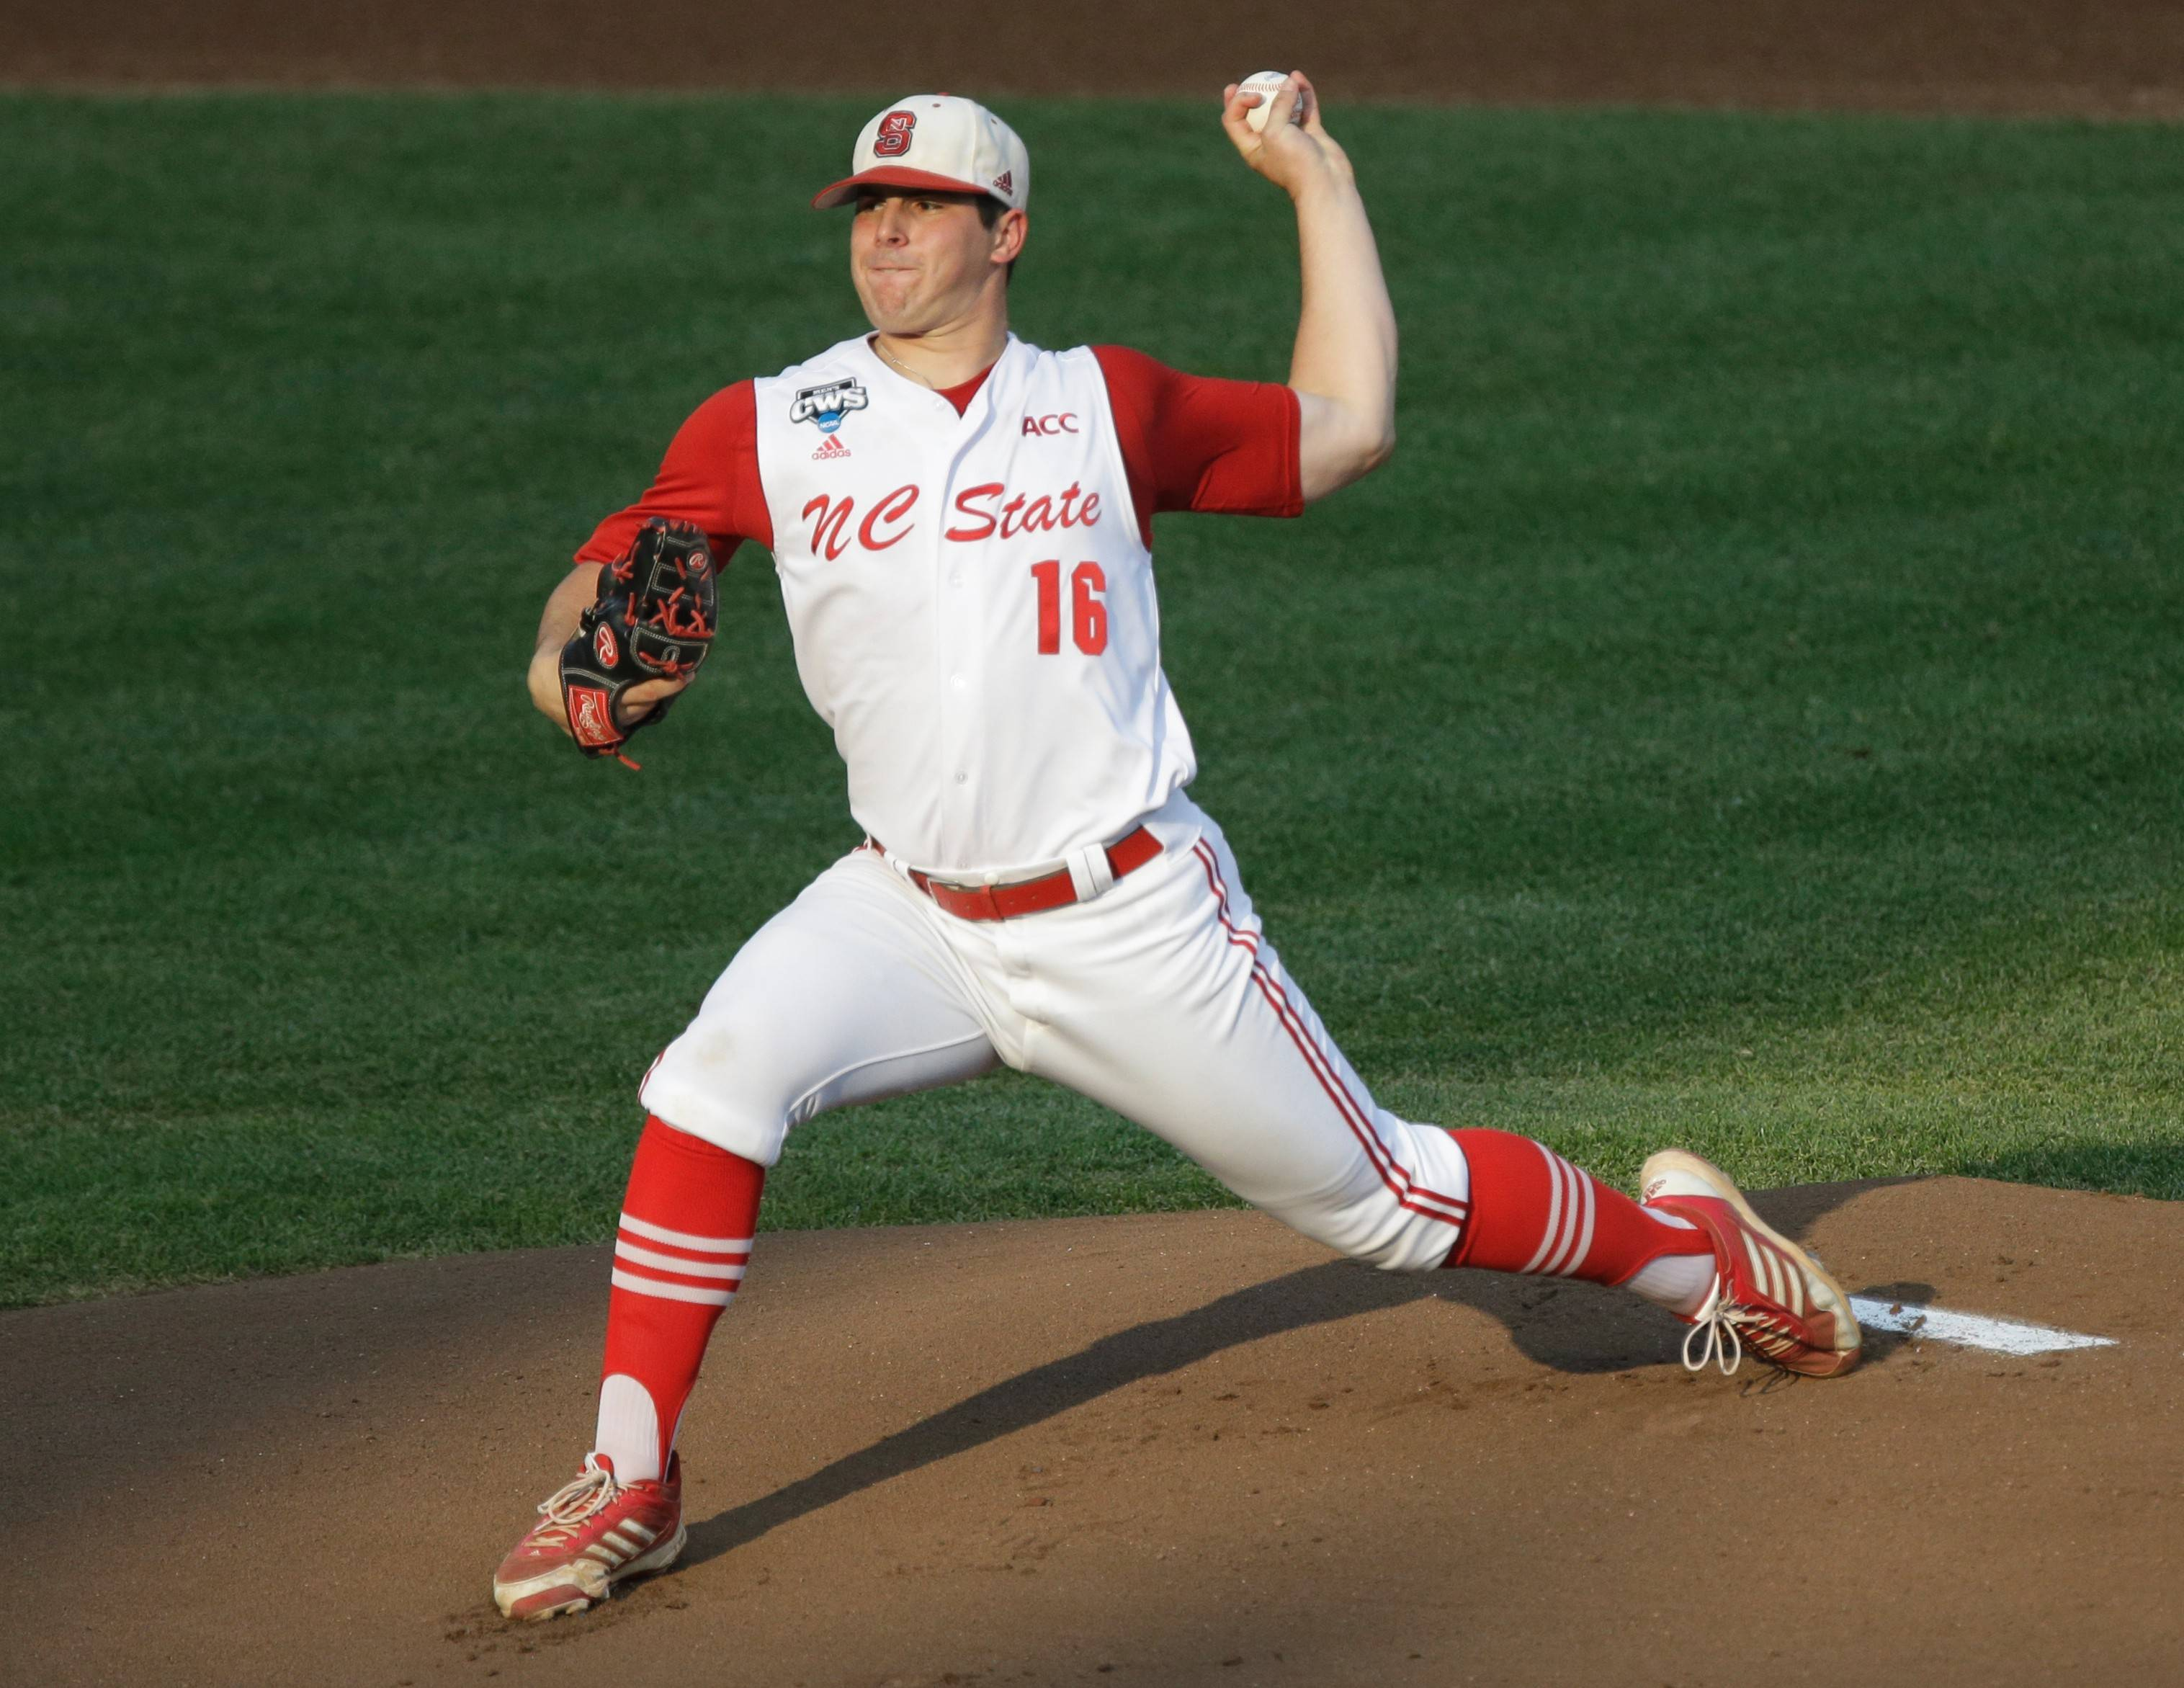 Fiercely competitive Rodon motivated by draft snub